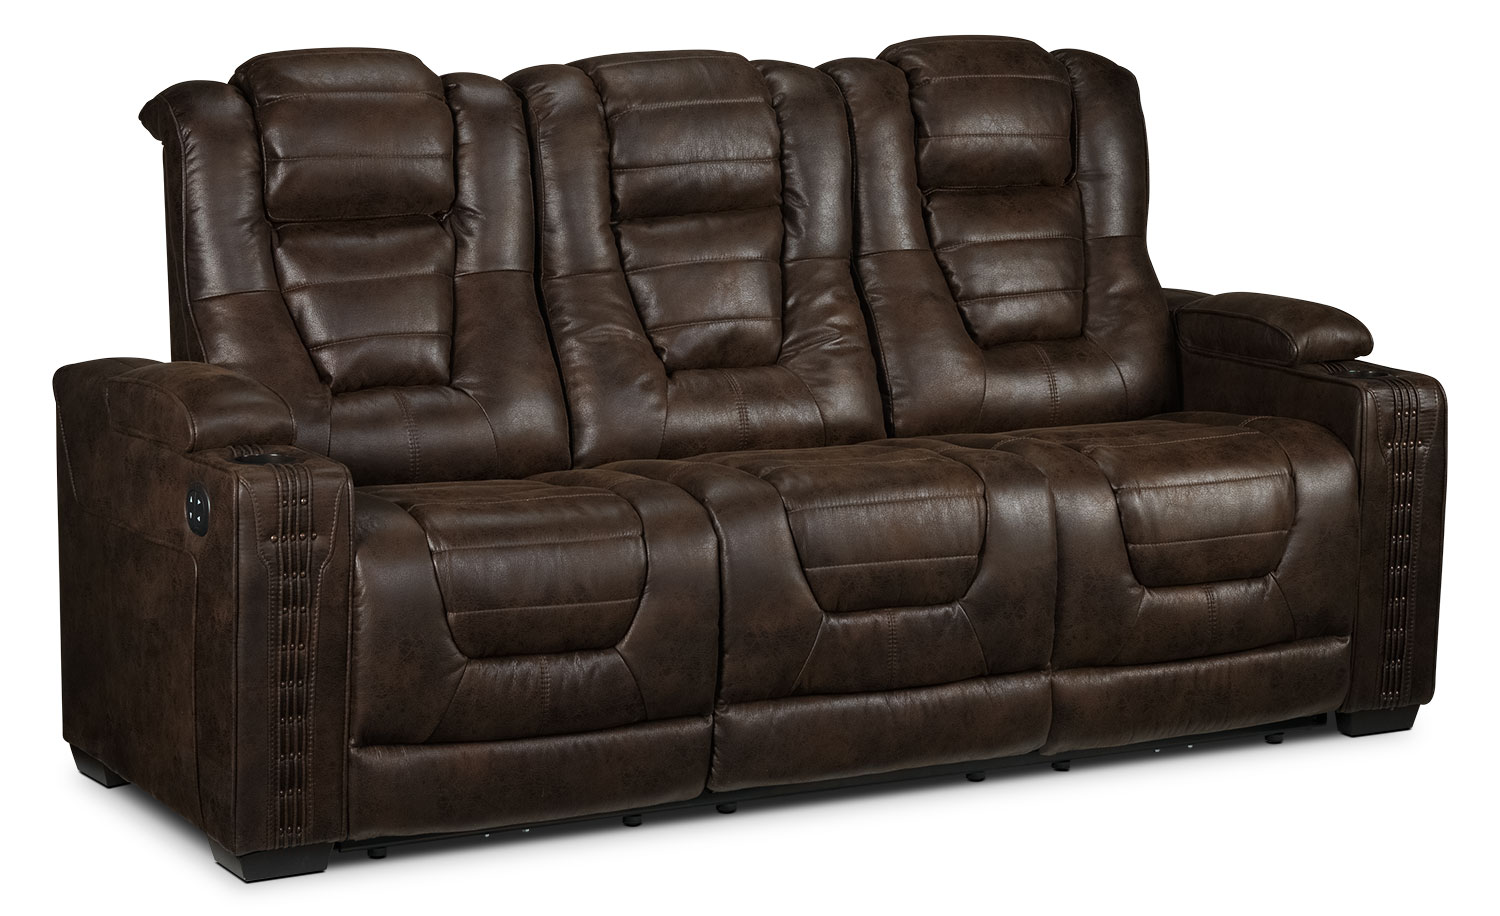 Living Room Furniture - Dakota Power Reclining Sofa - Walnut